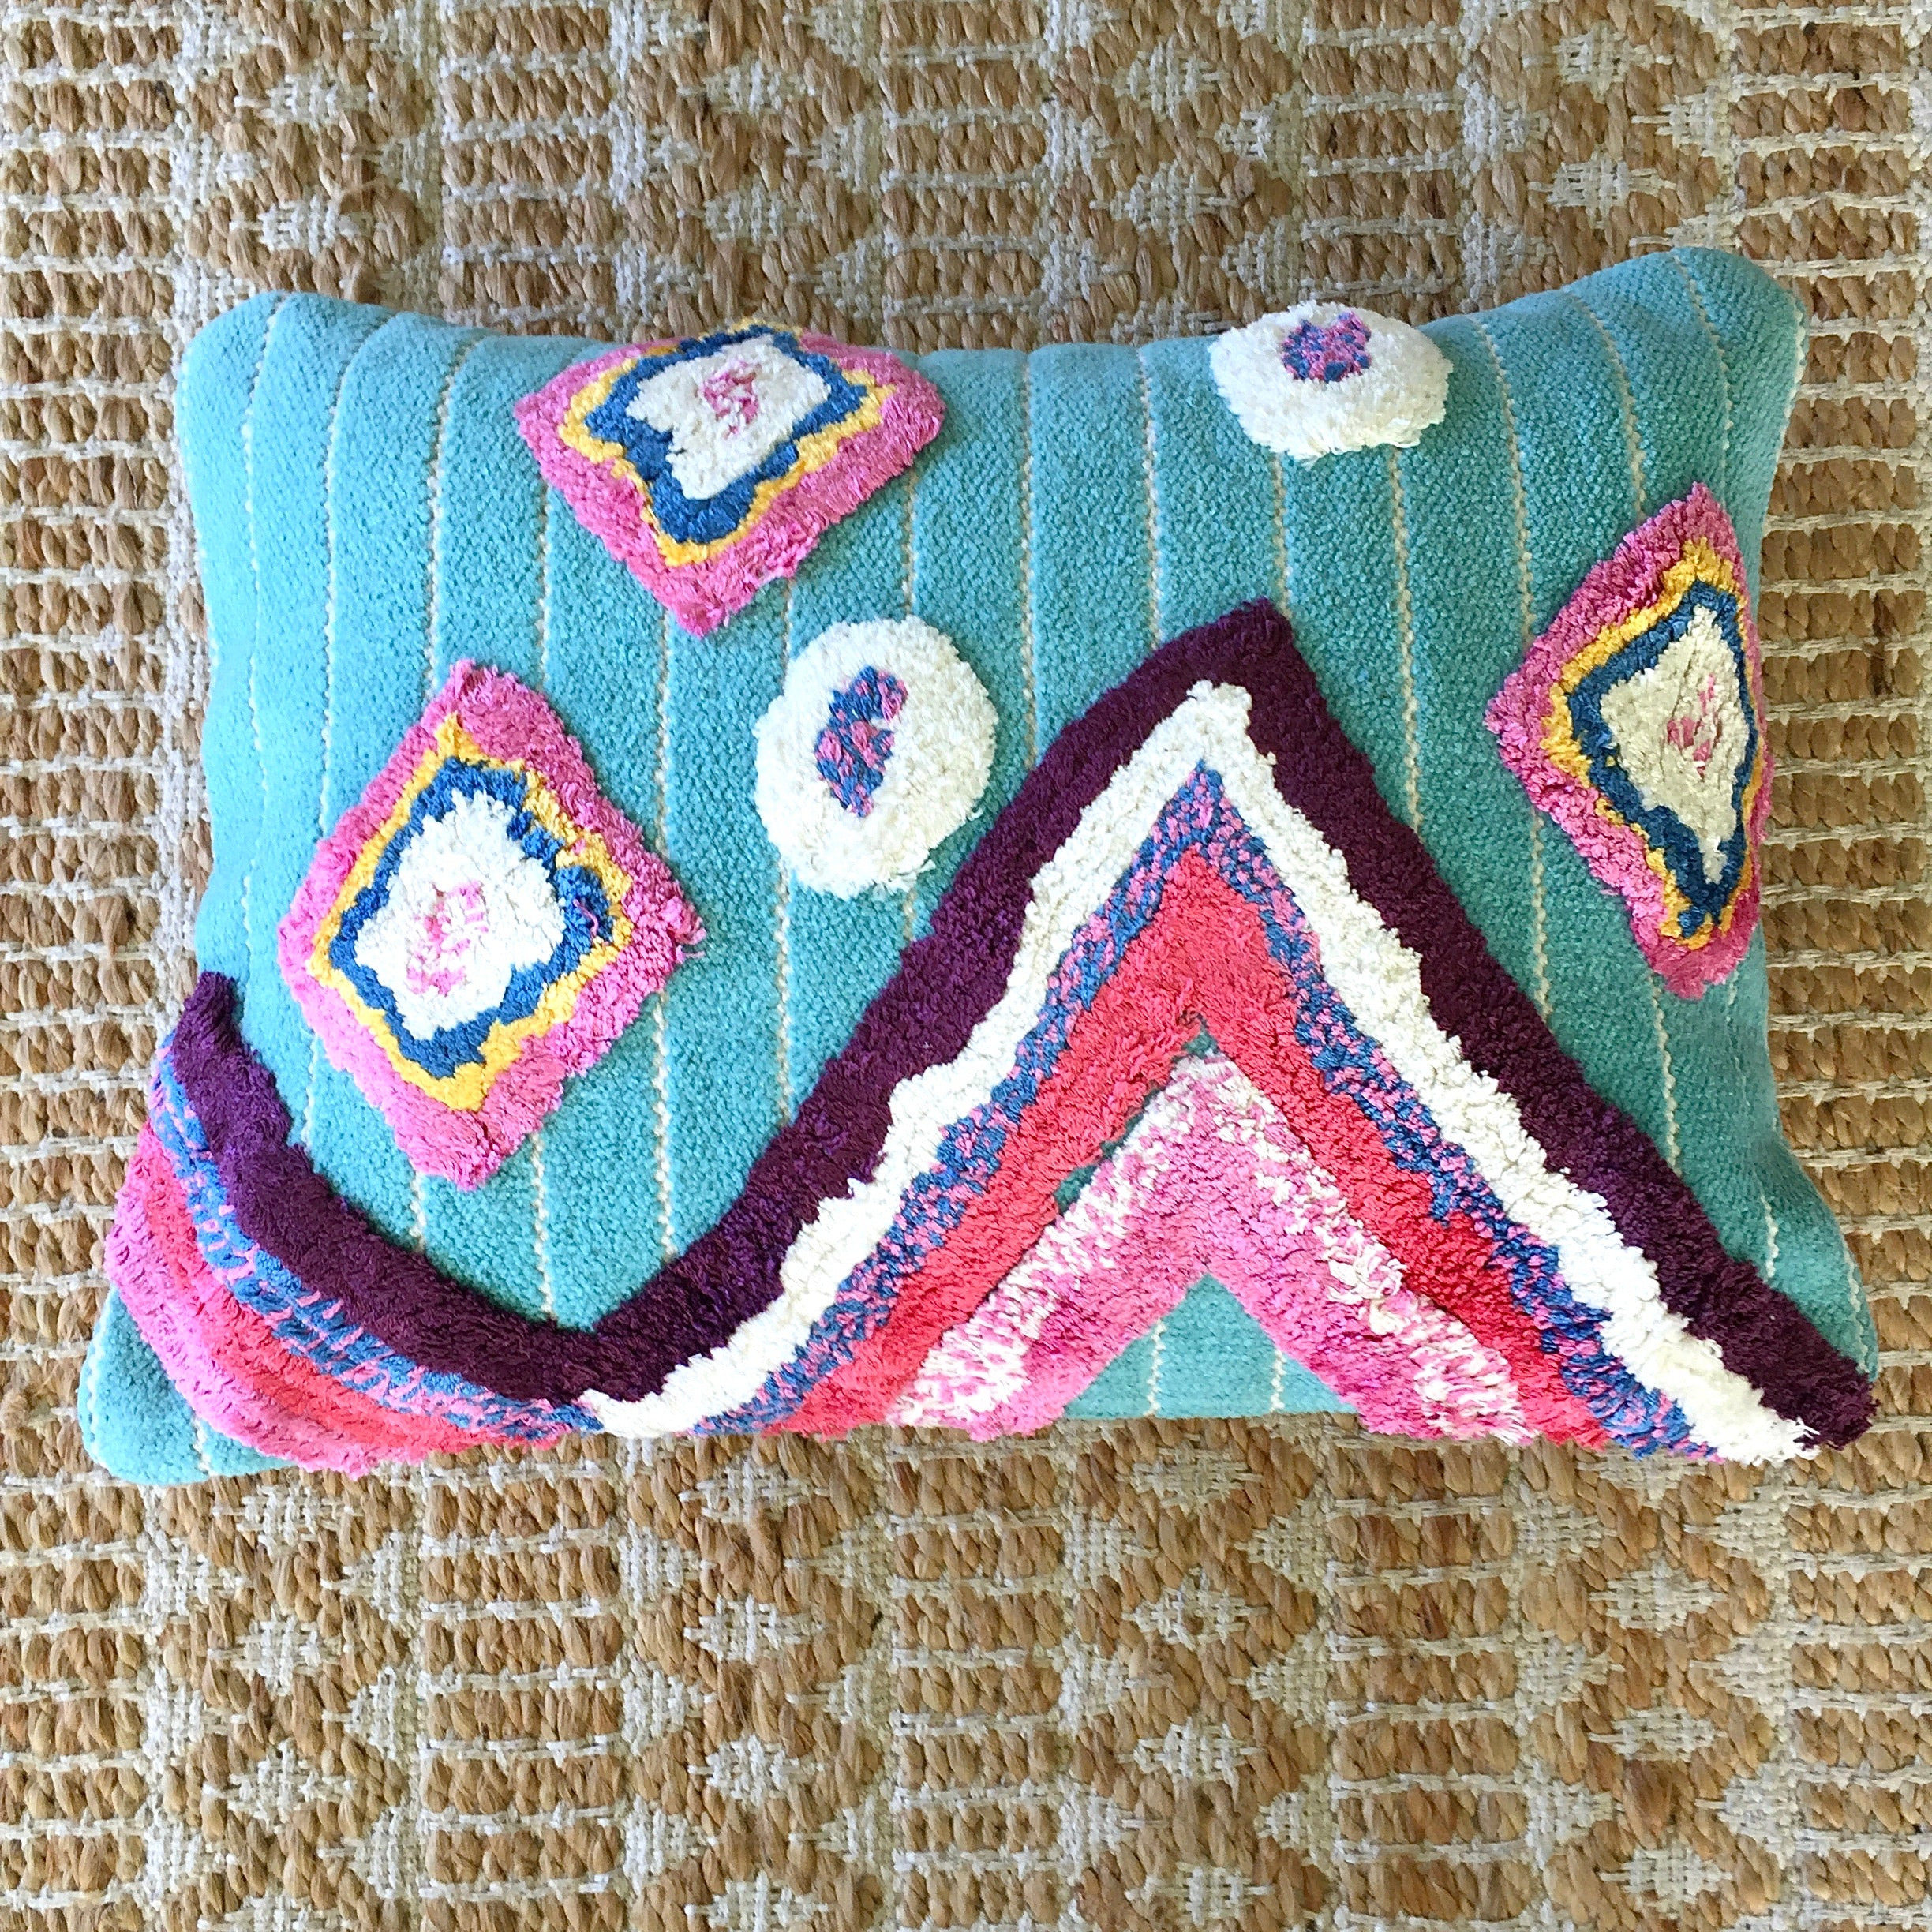 BOHO-CHIC Silk Pile Pillow|Medina| Handwoven| Textured Boho| | New Boho Cushion| 18 x 13